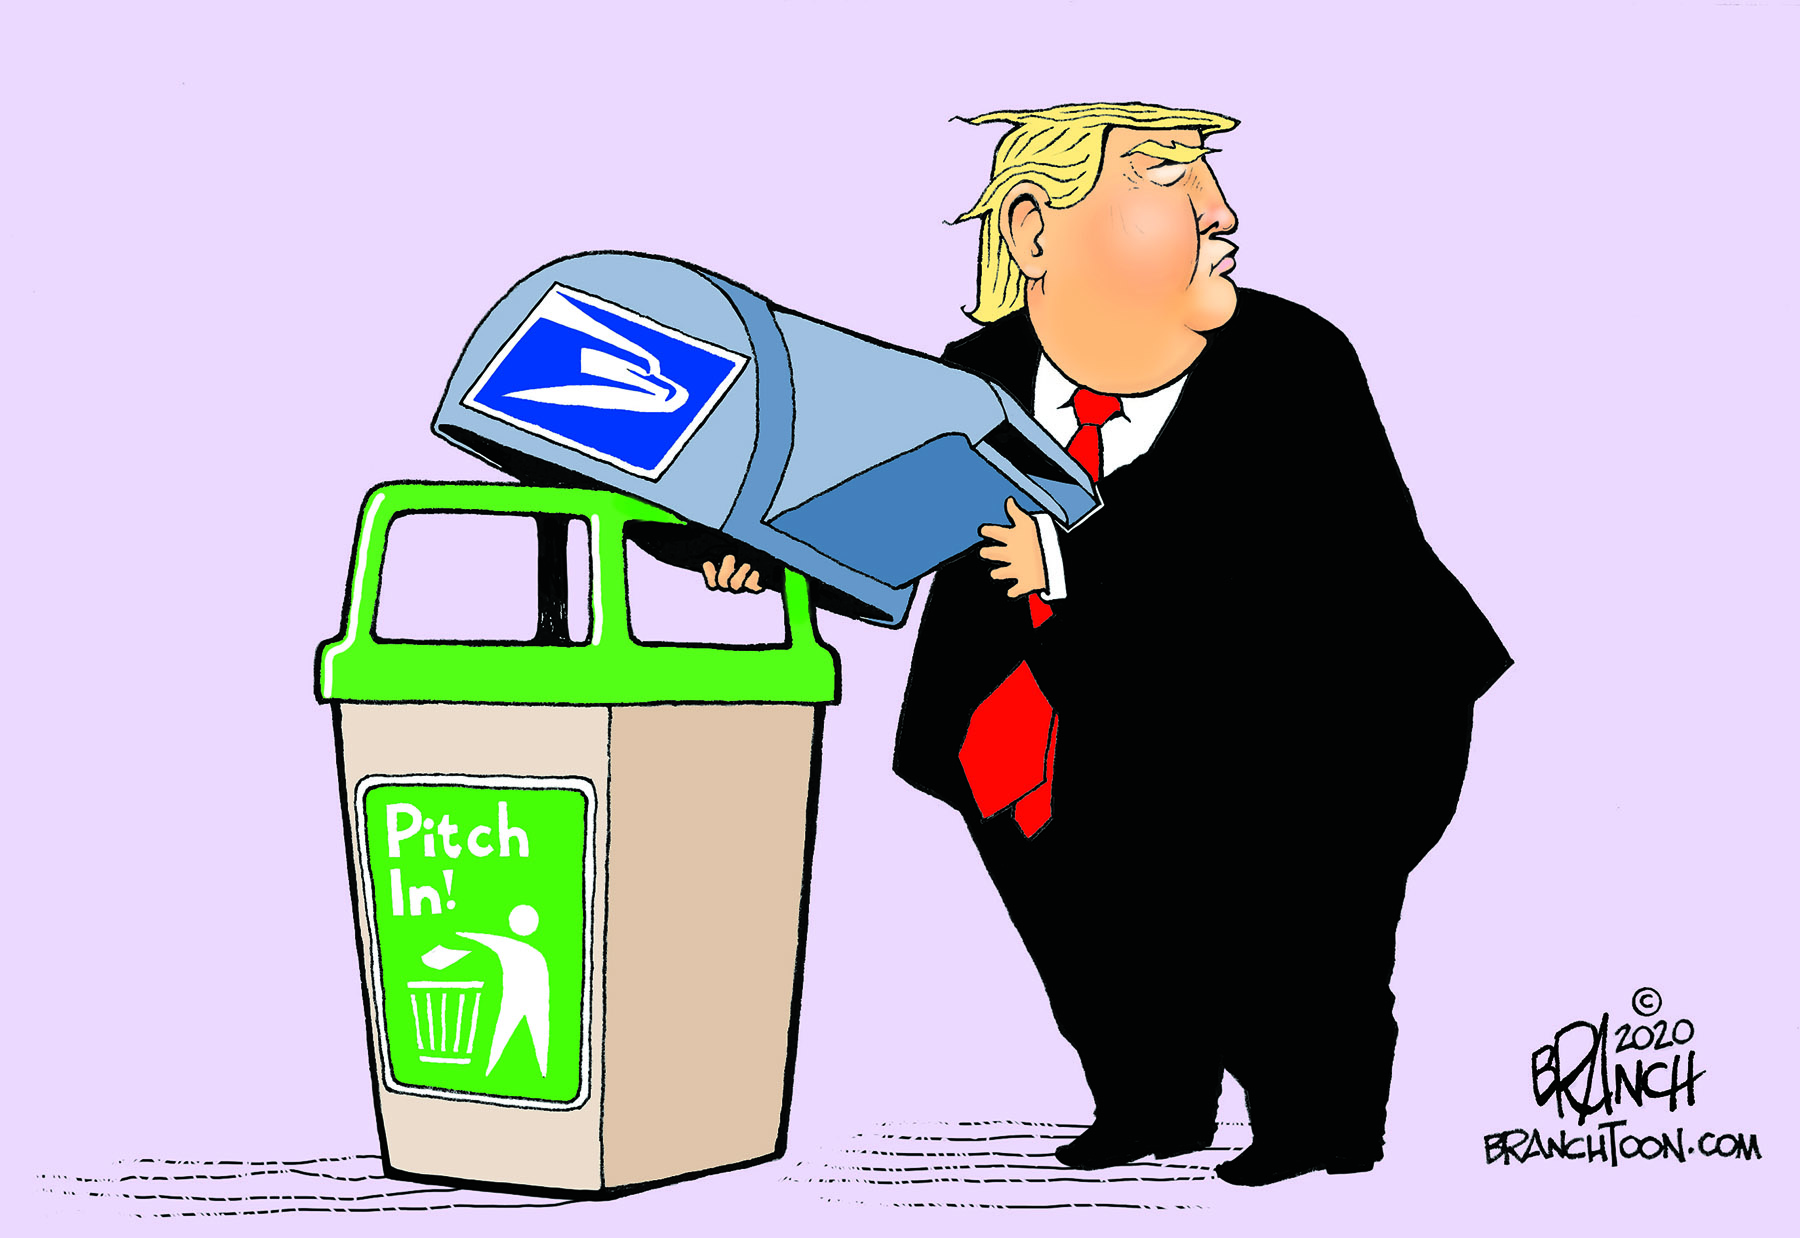 081320-trump-usps-mail-web